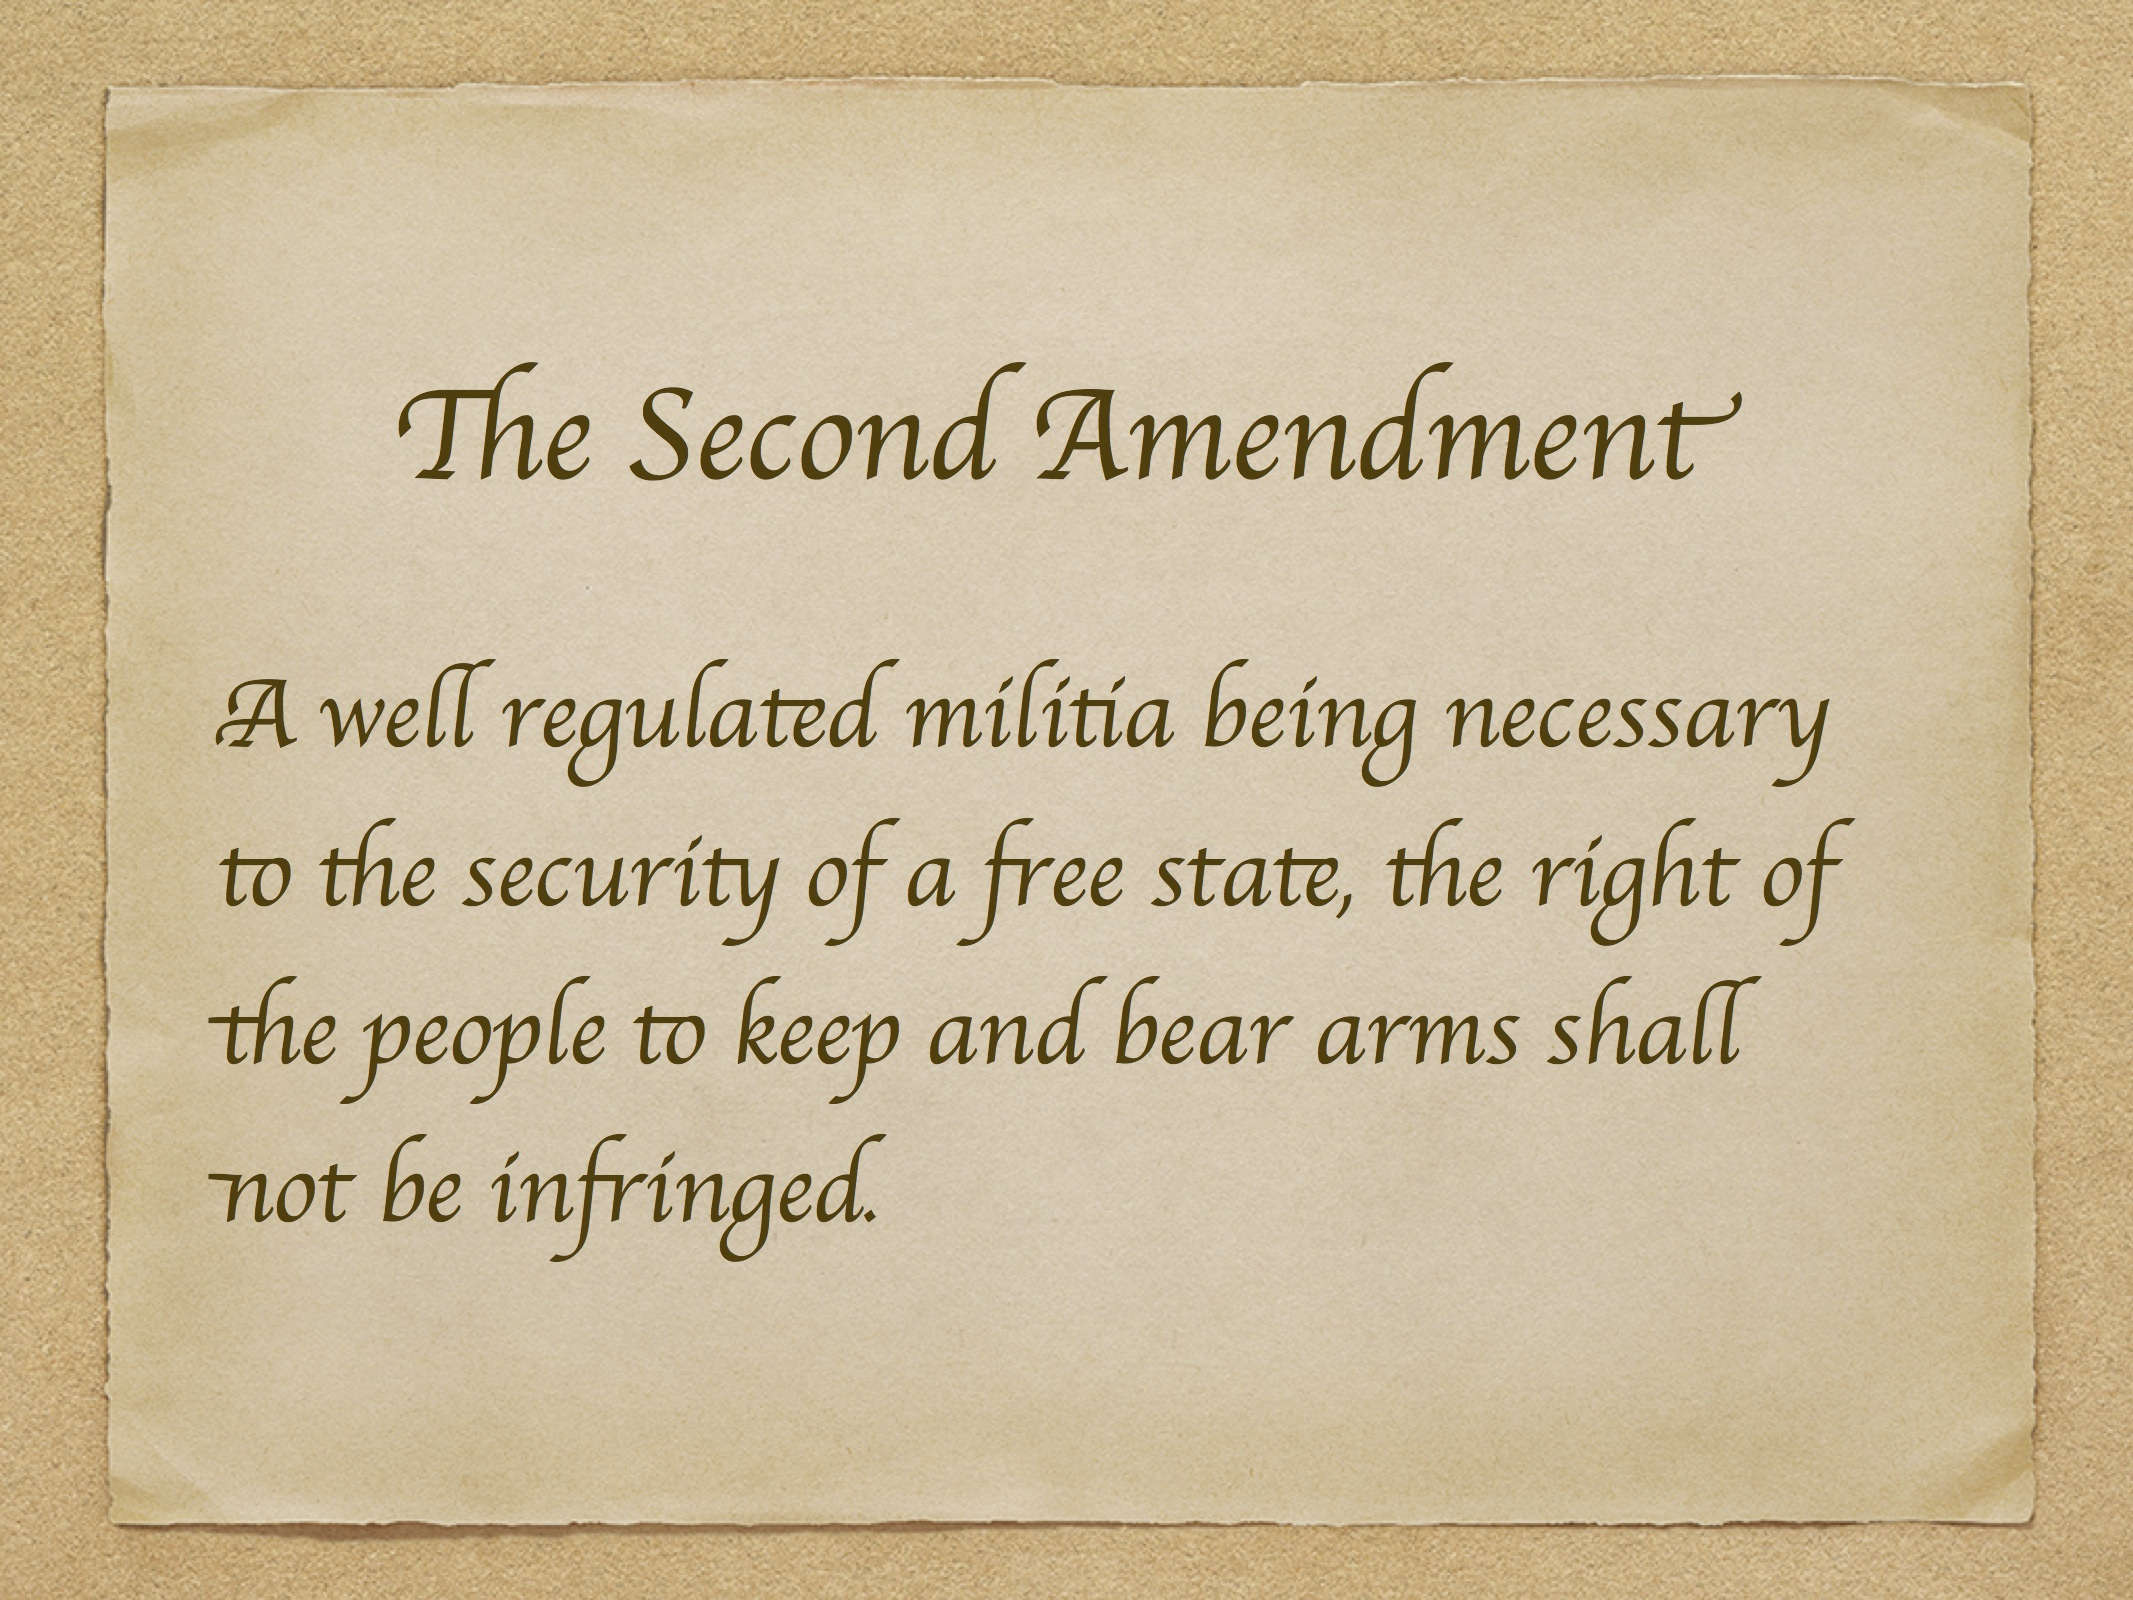 the best amendment The second amendment to the united states constitution, relating to the right of people to bear arms, was enacted as part of the bill of rights, its ratification occurring on 15 december 1791 with the support of the virginia legislature.